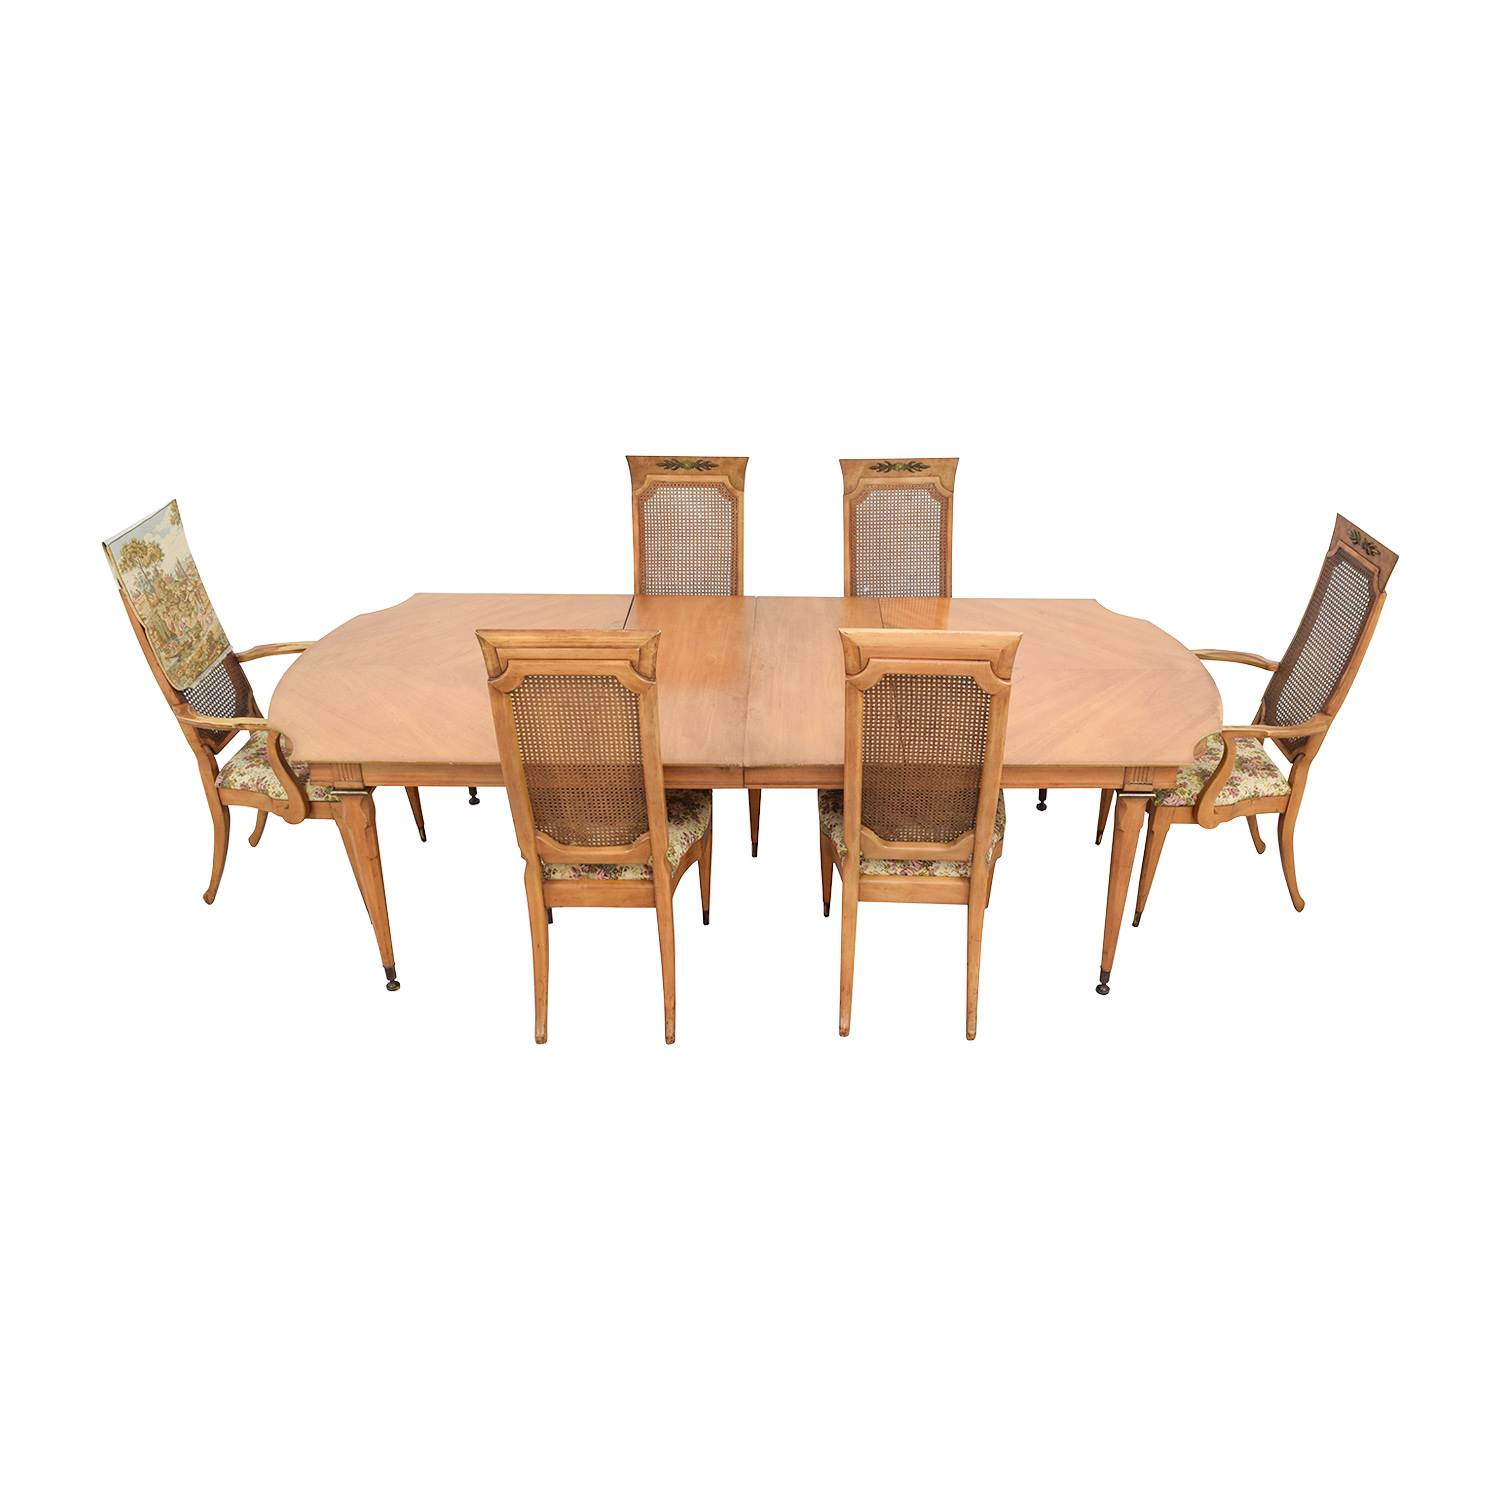 shop Merz 1968 Wood Dining Set with Floral Upholstered Chairs Merz 1968